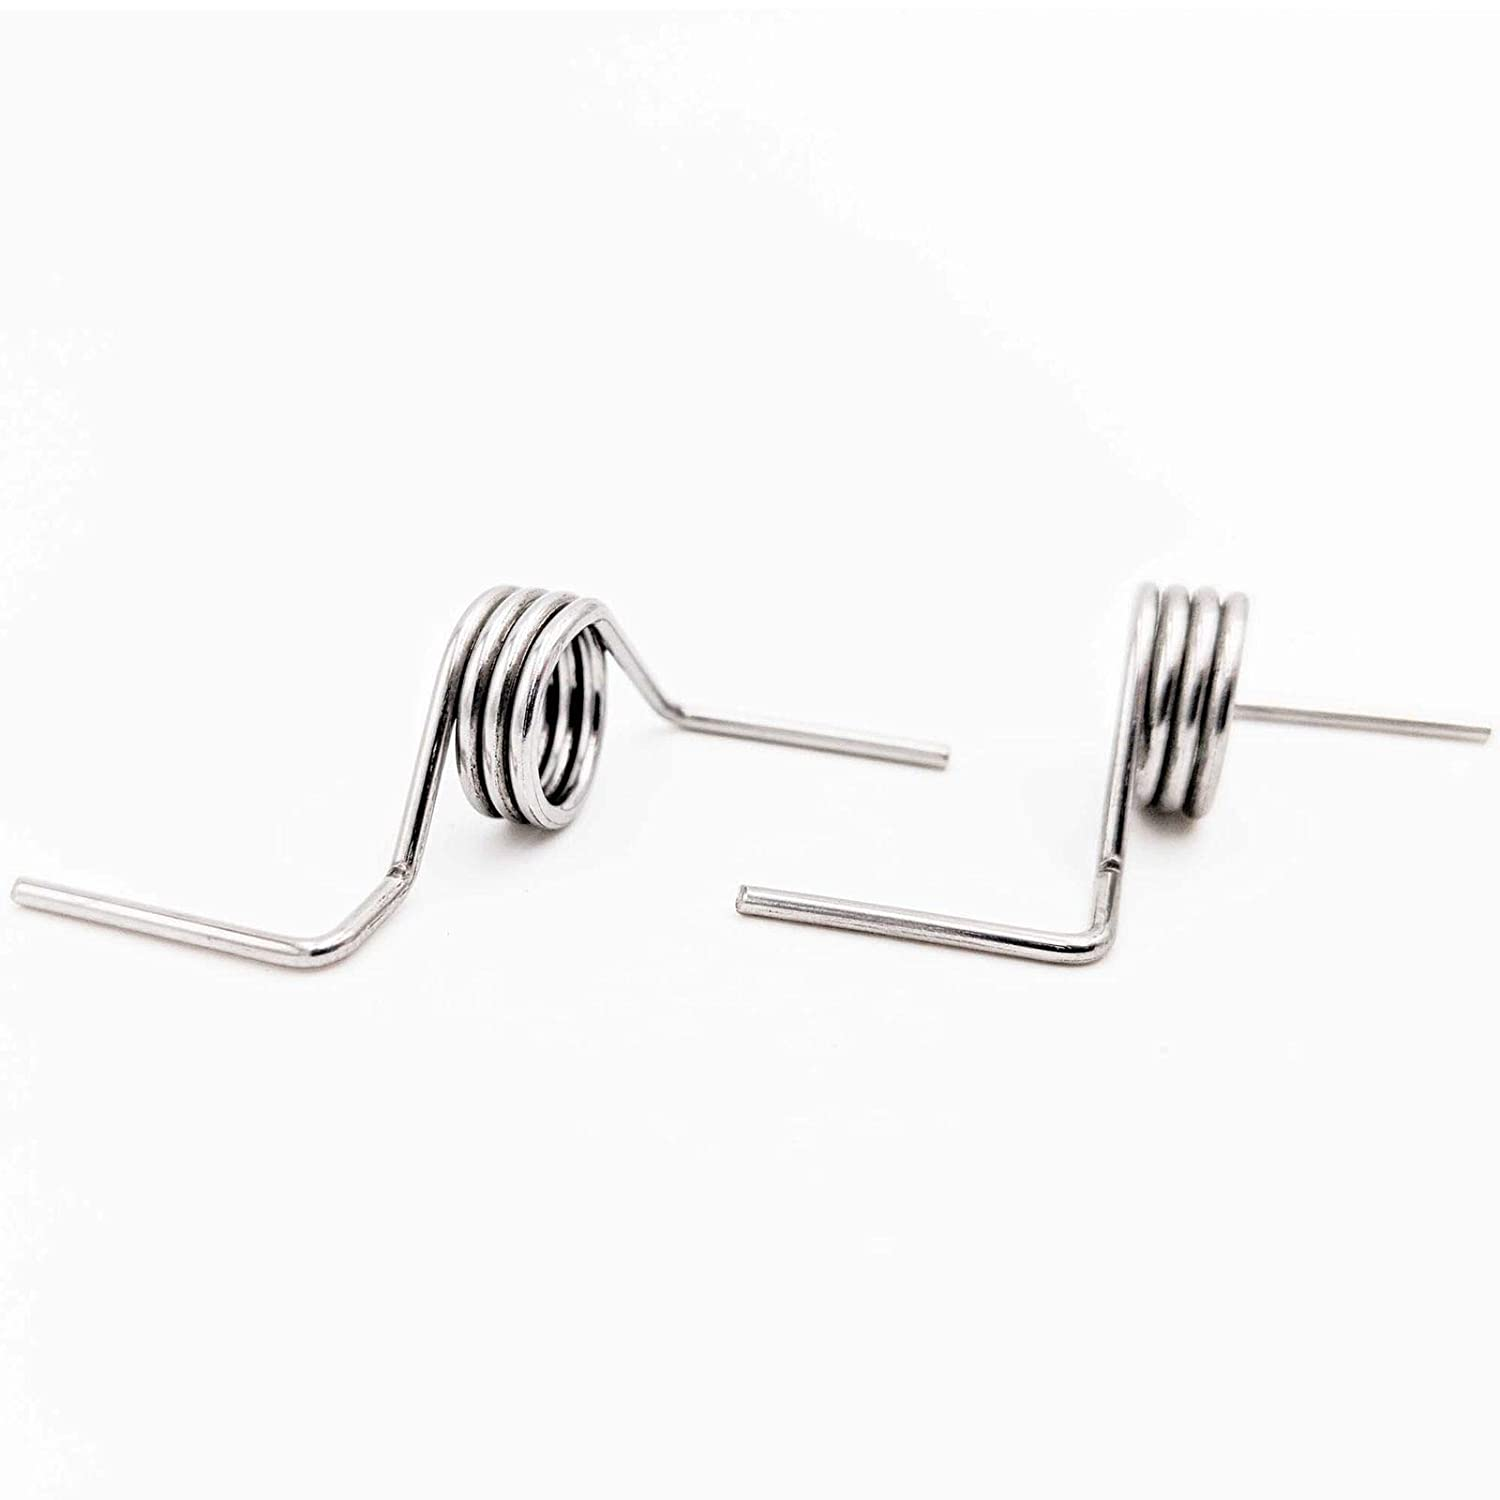 2PCS DA81 01345B Spring For Samsung Refrigerator French Door White Sleeves Pin French Spring RD DA81 01346A Compatible With Models RF267AFWP RF267HERS RF268ABBP RF268ABPN RF268ABRS RF268ABWP